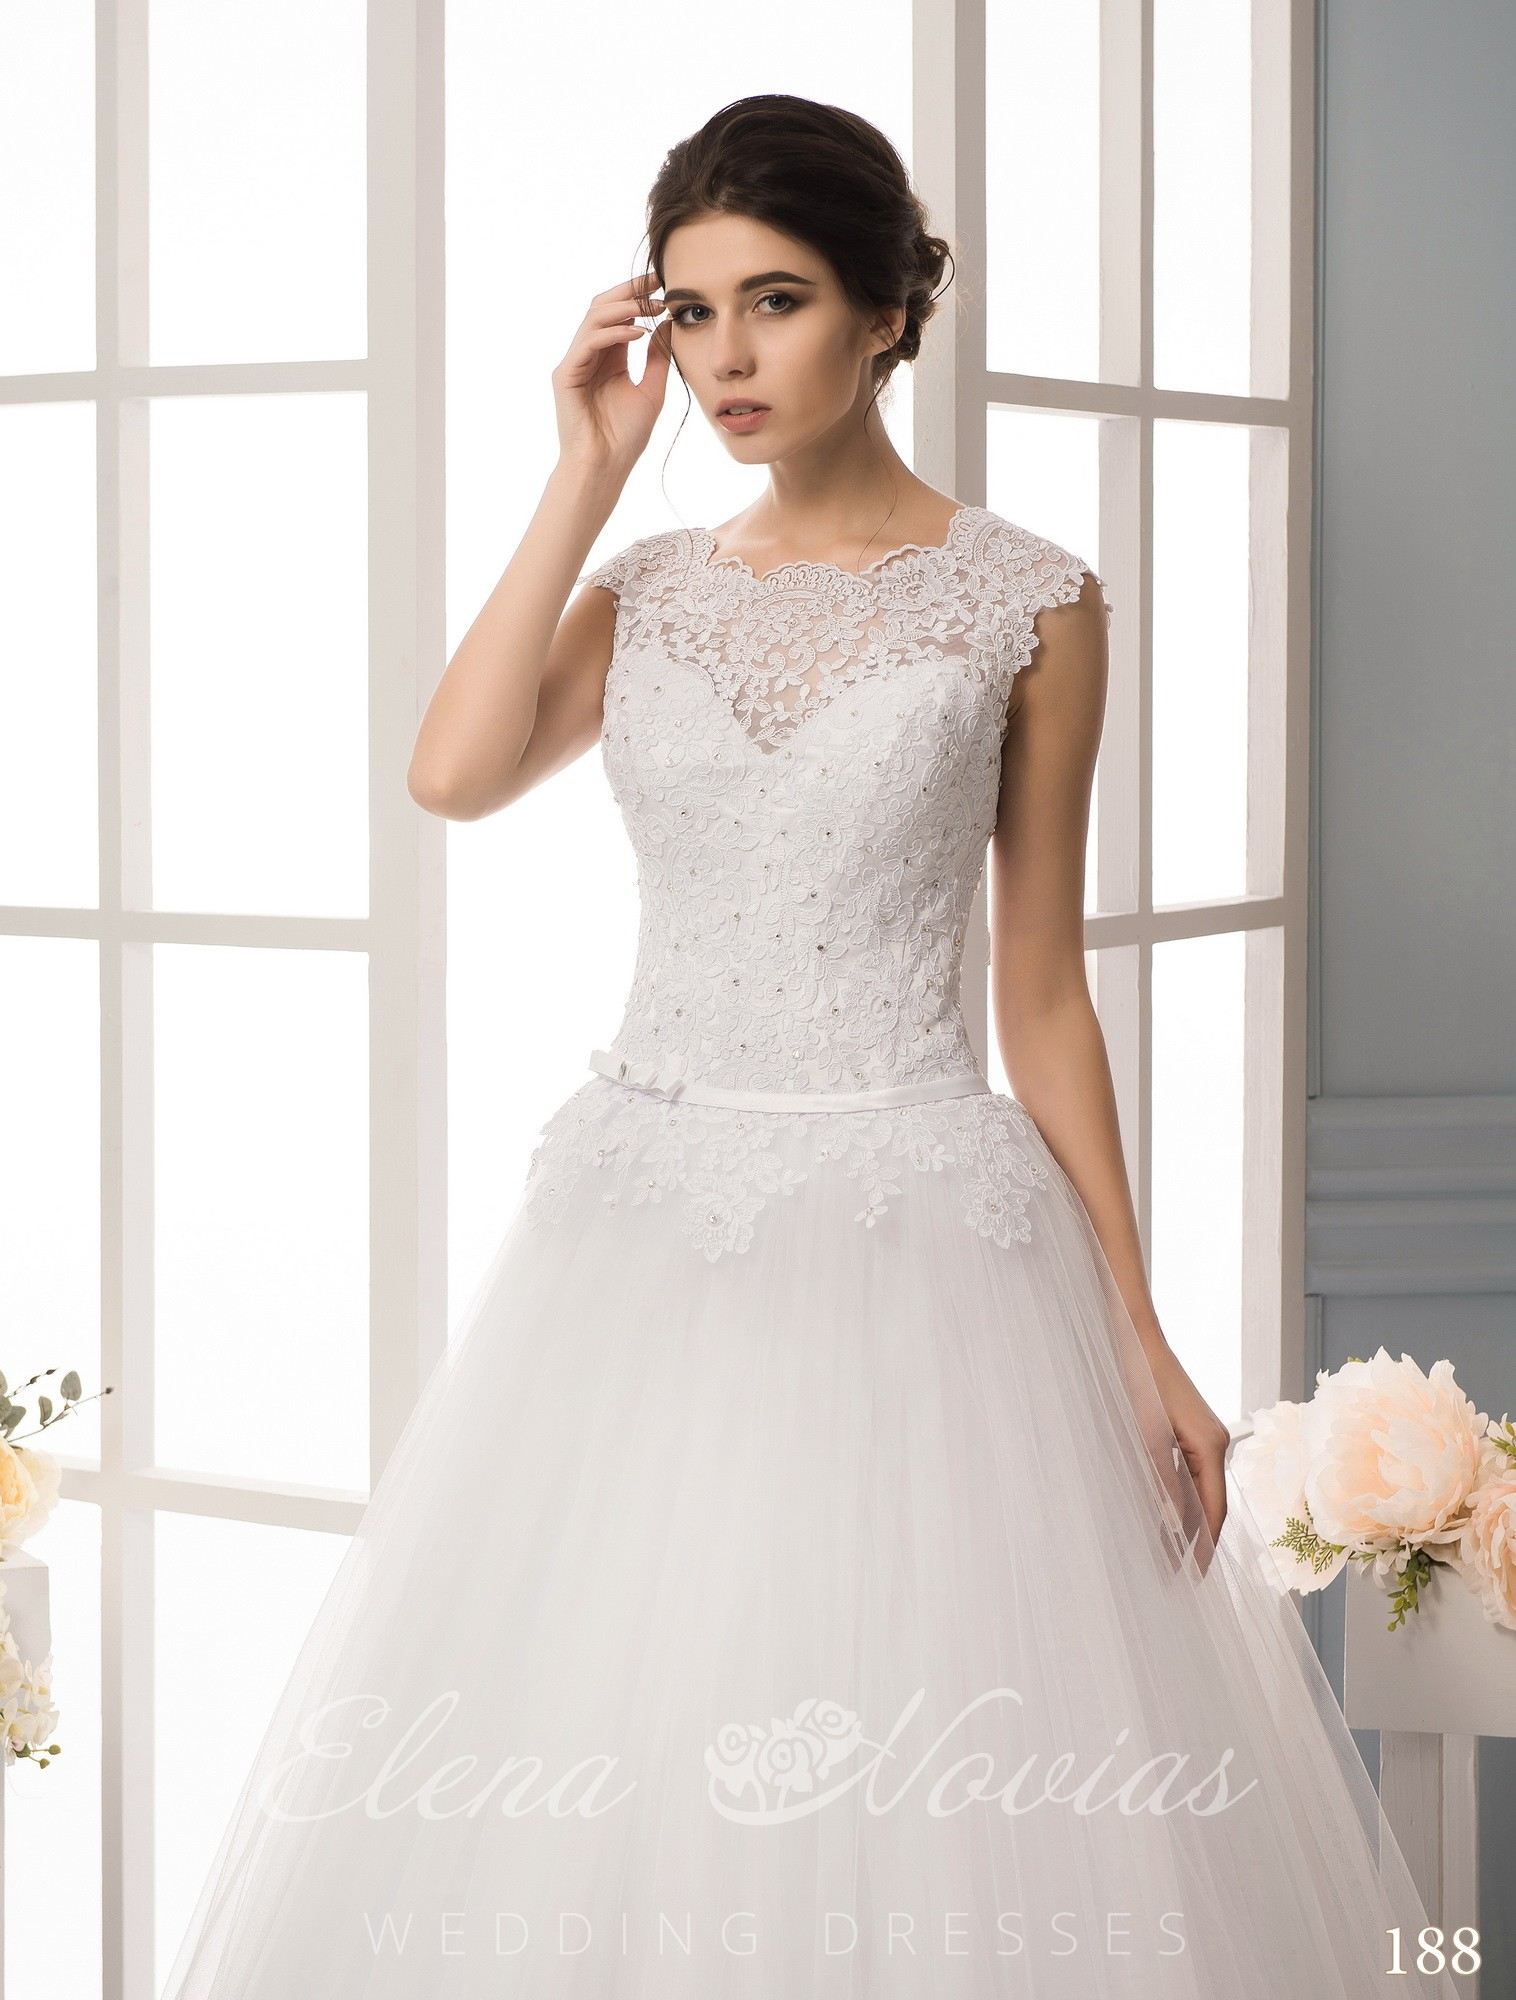 Wedding dress wholesale 188